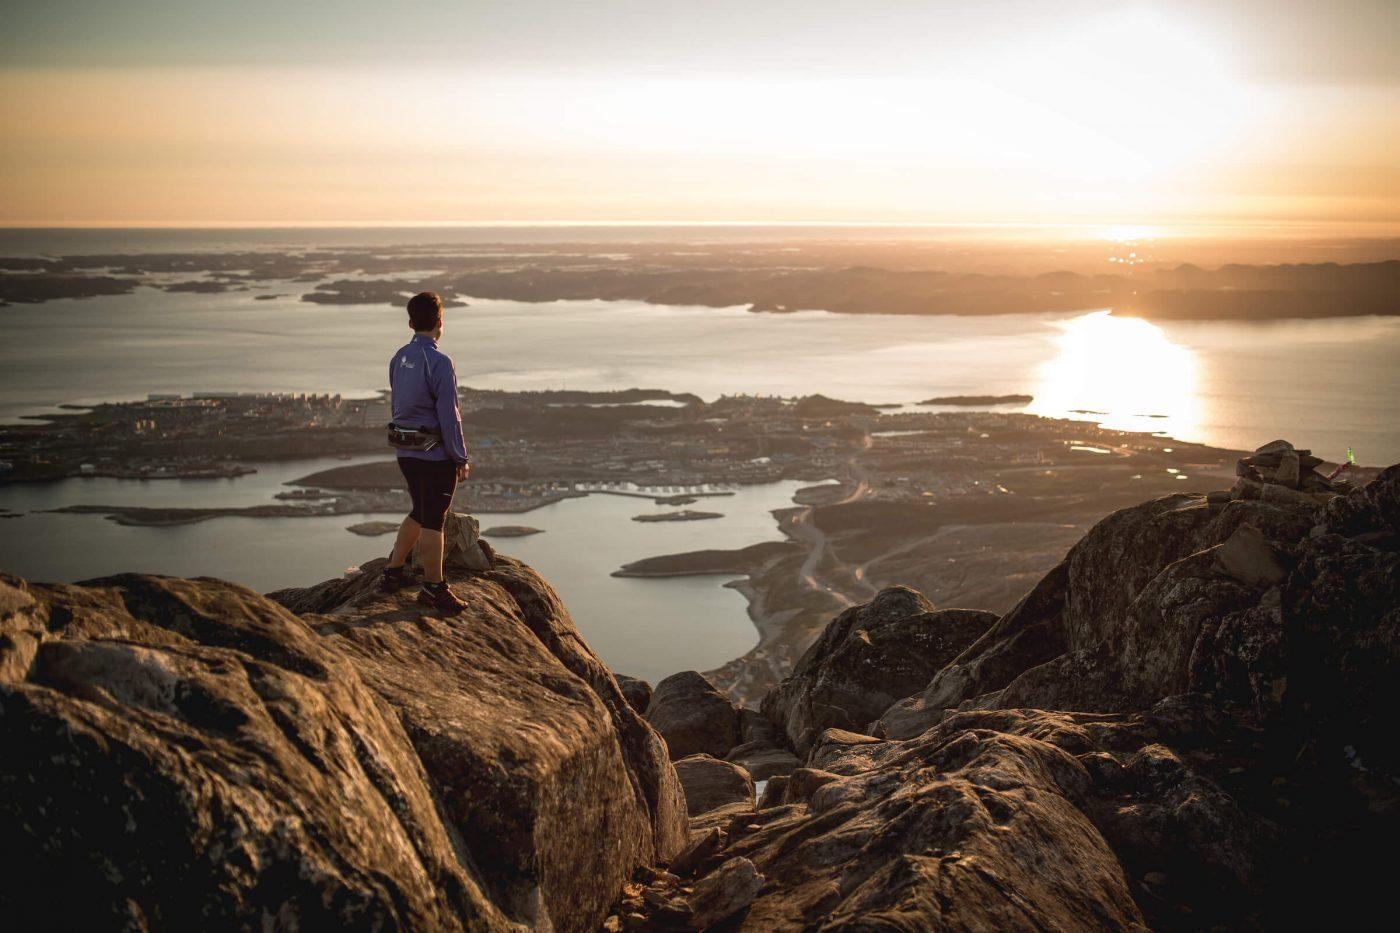 A hiker enjoying the midnight sun and the view over Nuuk from the peak of Ukkusissaq - Store Malene in Greenland